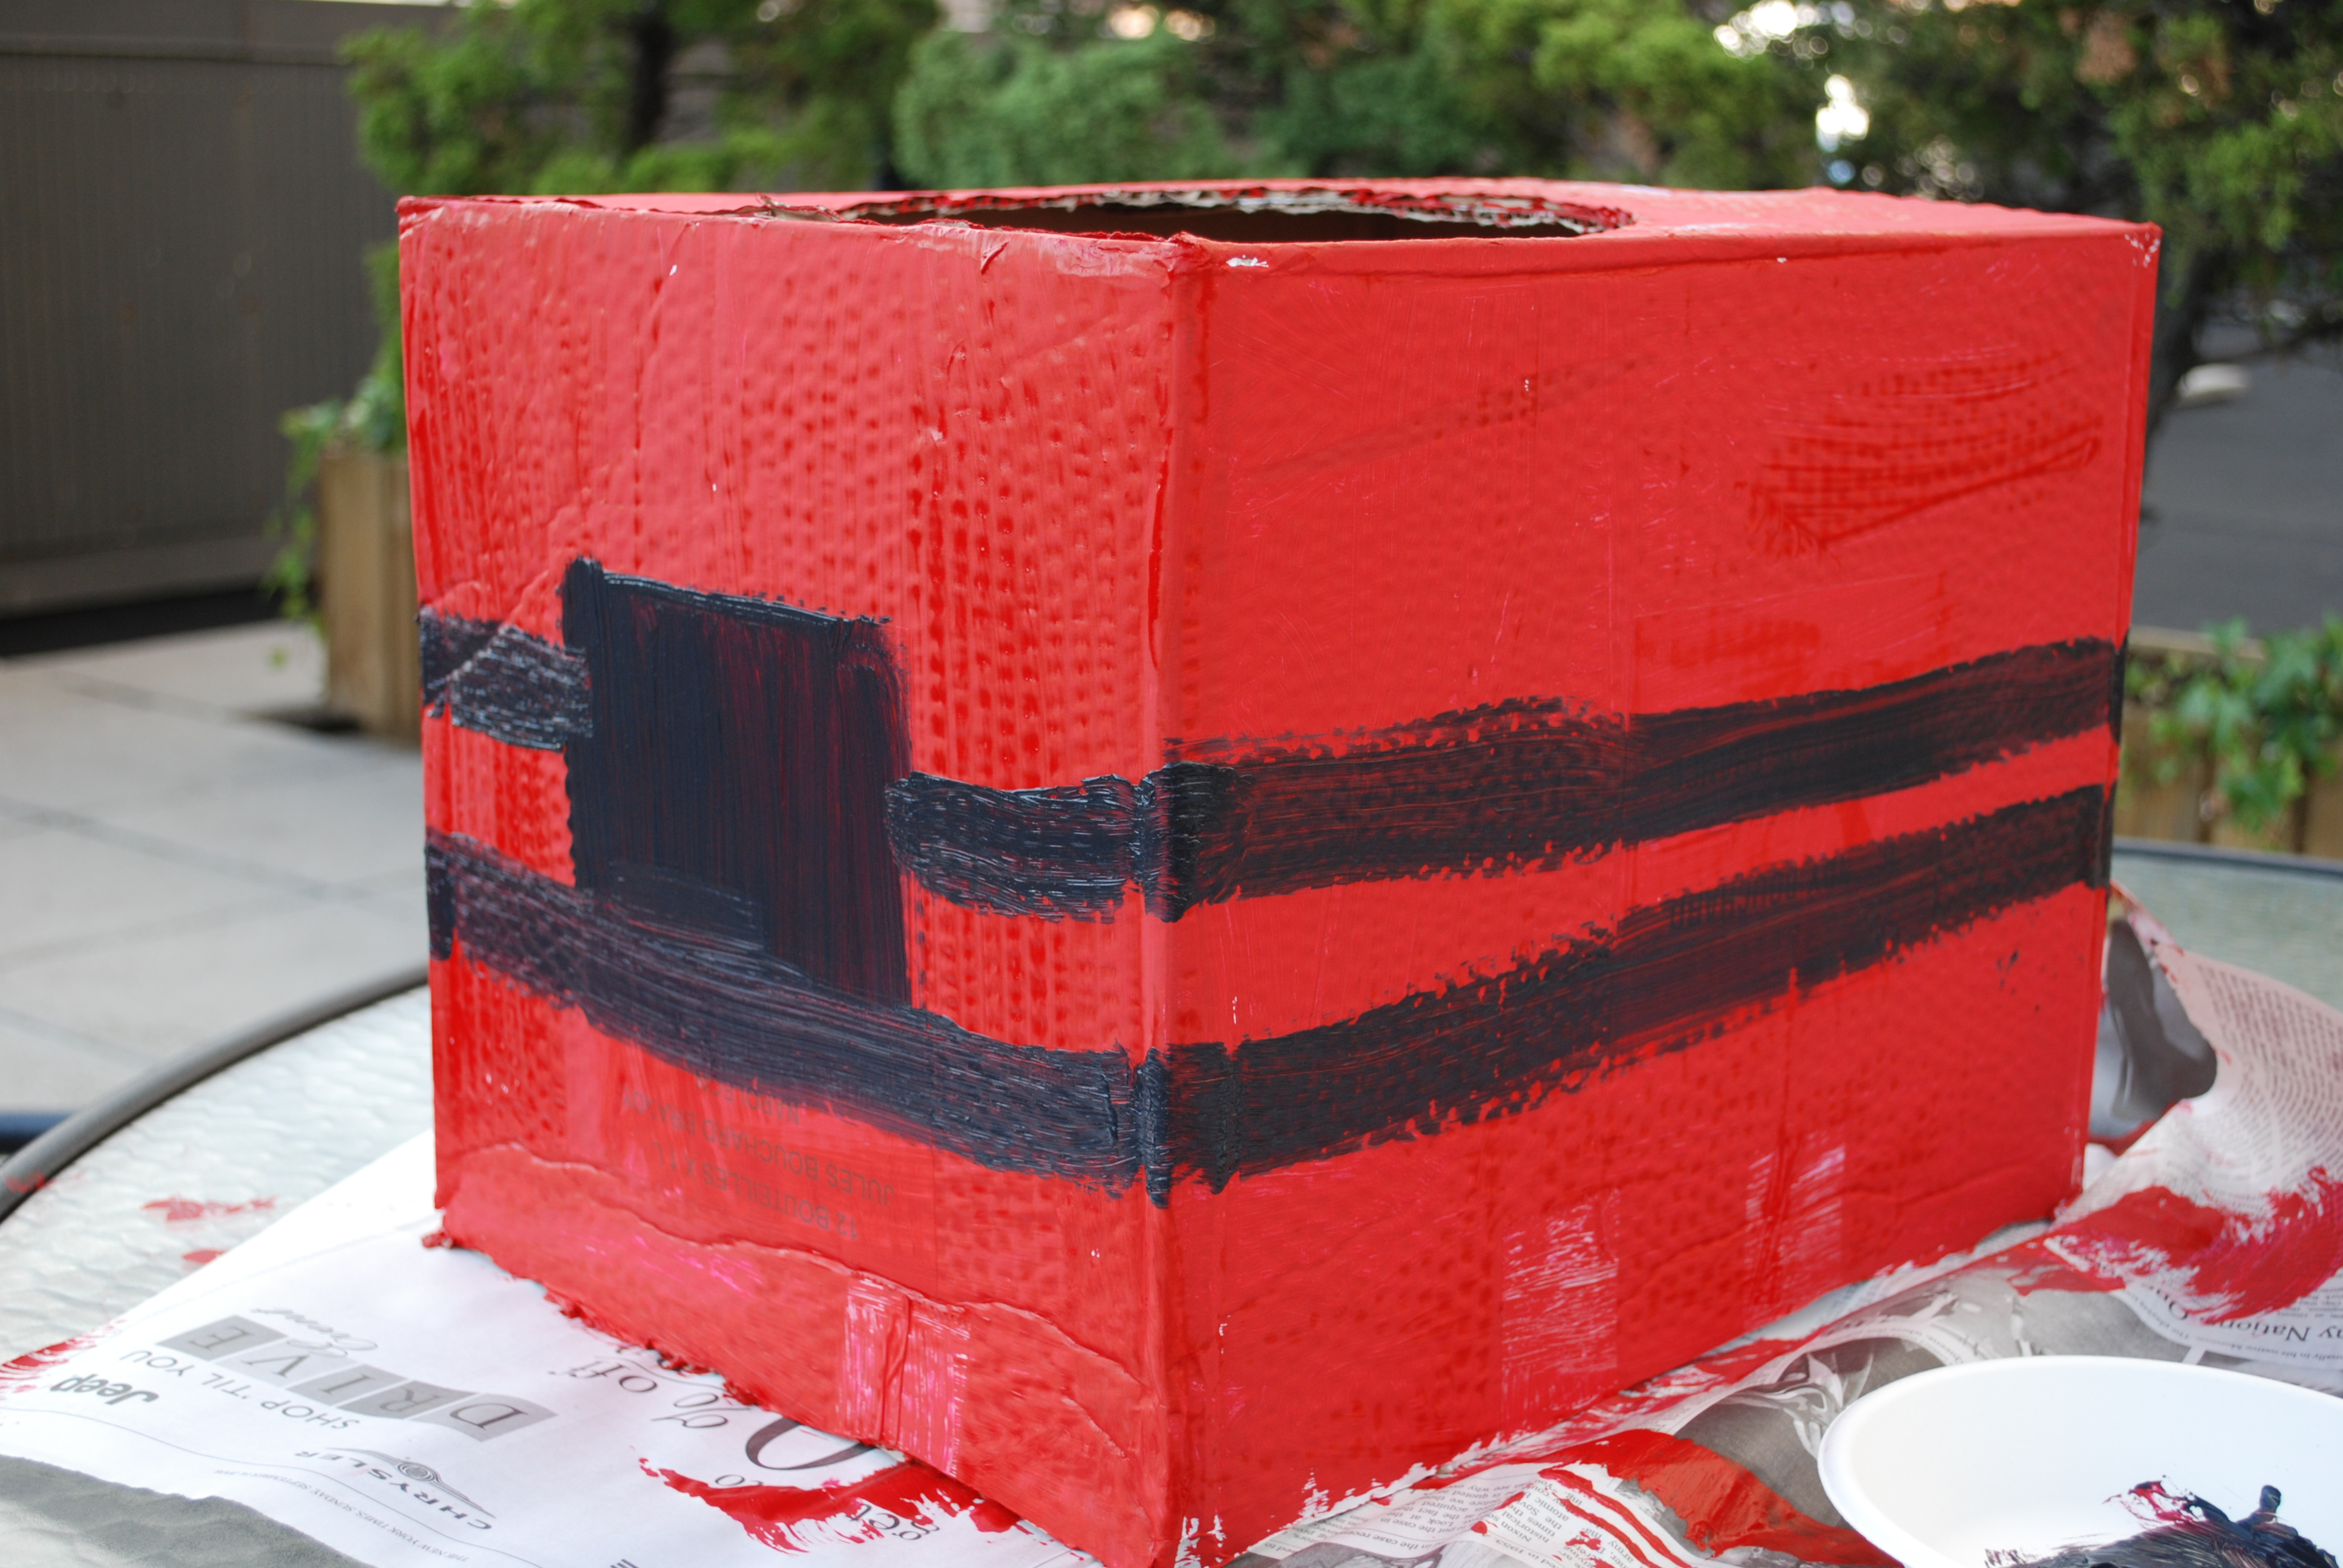 Next, begin enhancing your truck by painting stripes and details.